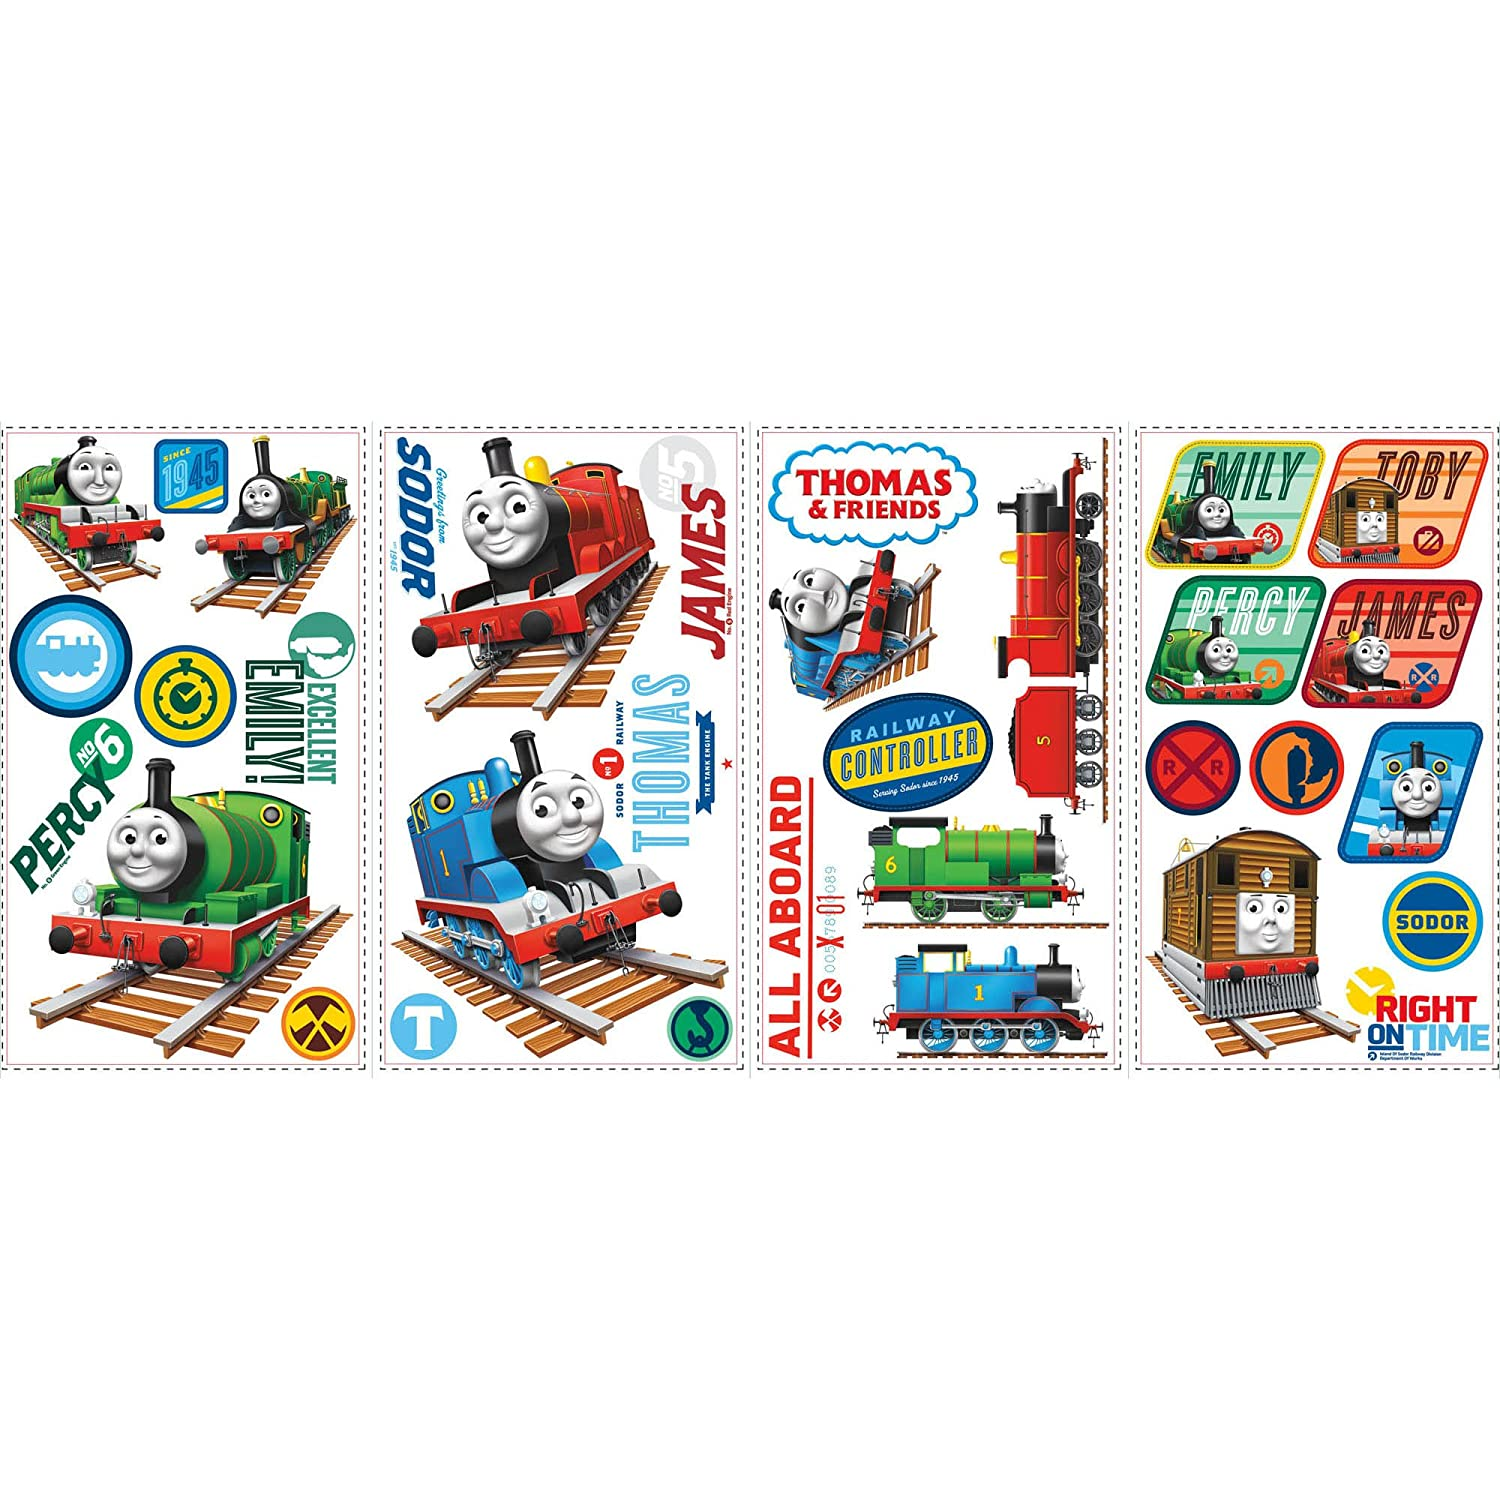 Roommates Rmk1831Scs Thomas The Tank Engine Peel And Stick Wall Decals, 33  Count   Decorative Wall Appliques   Amazon.com